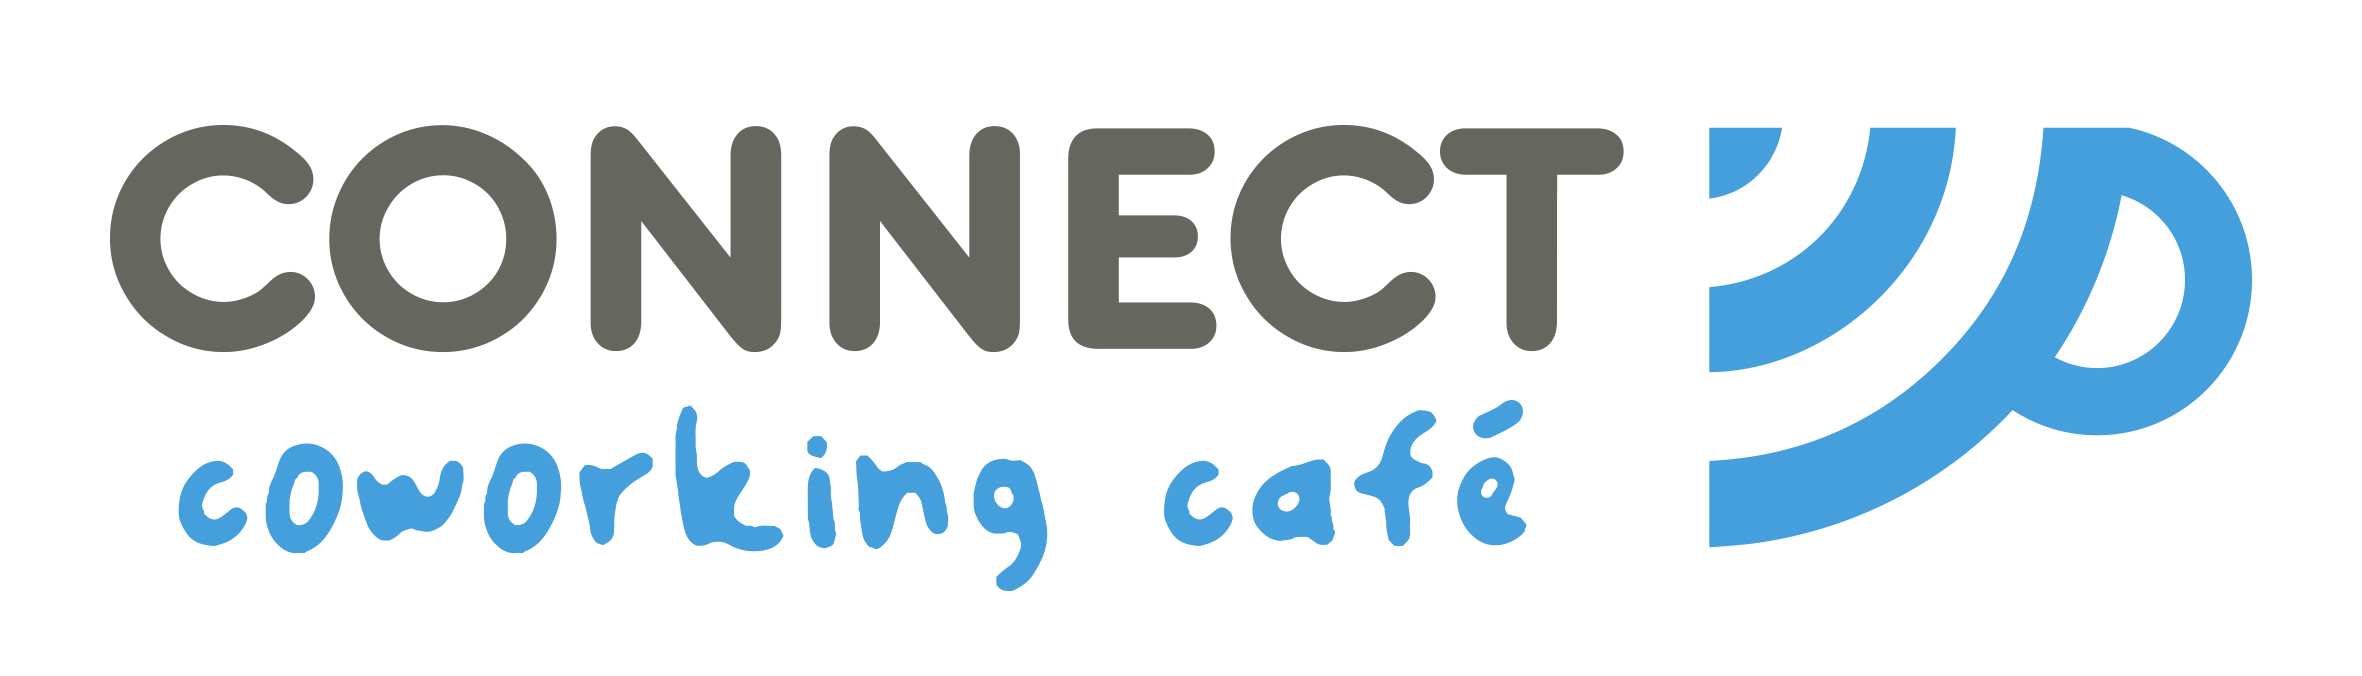 Connect Coworking Cafe